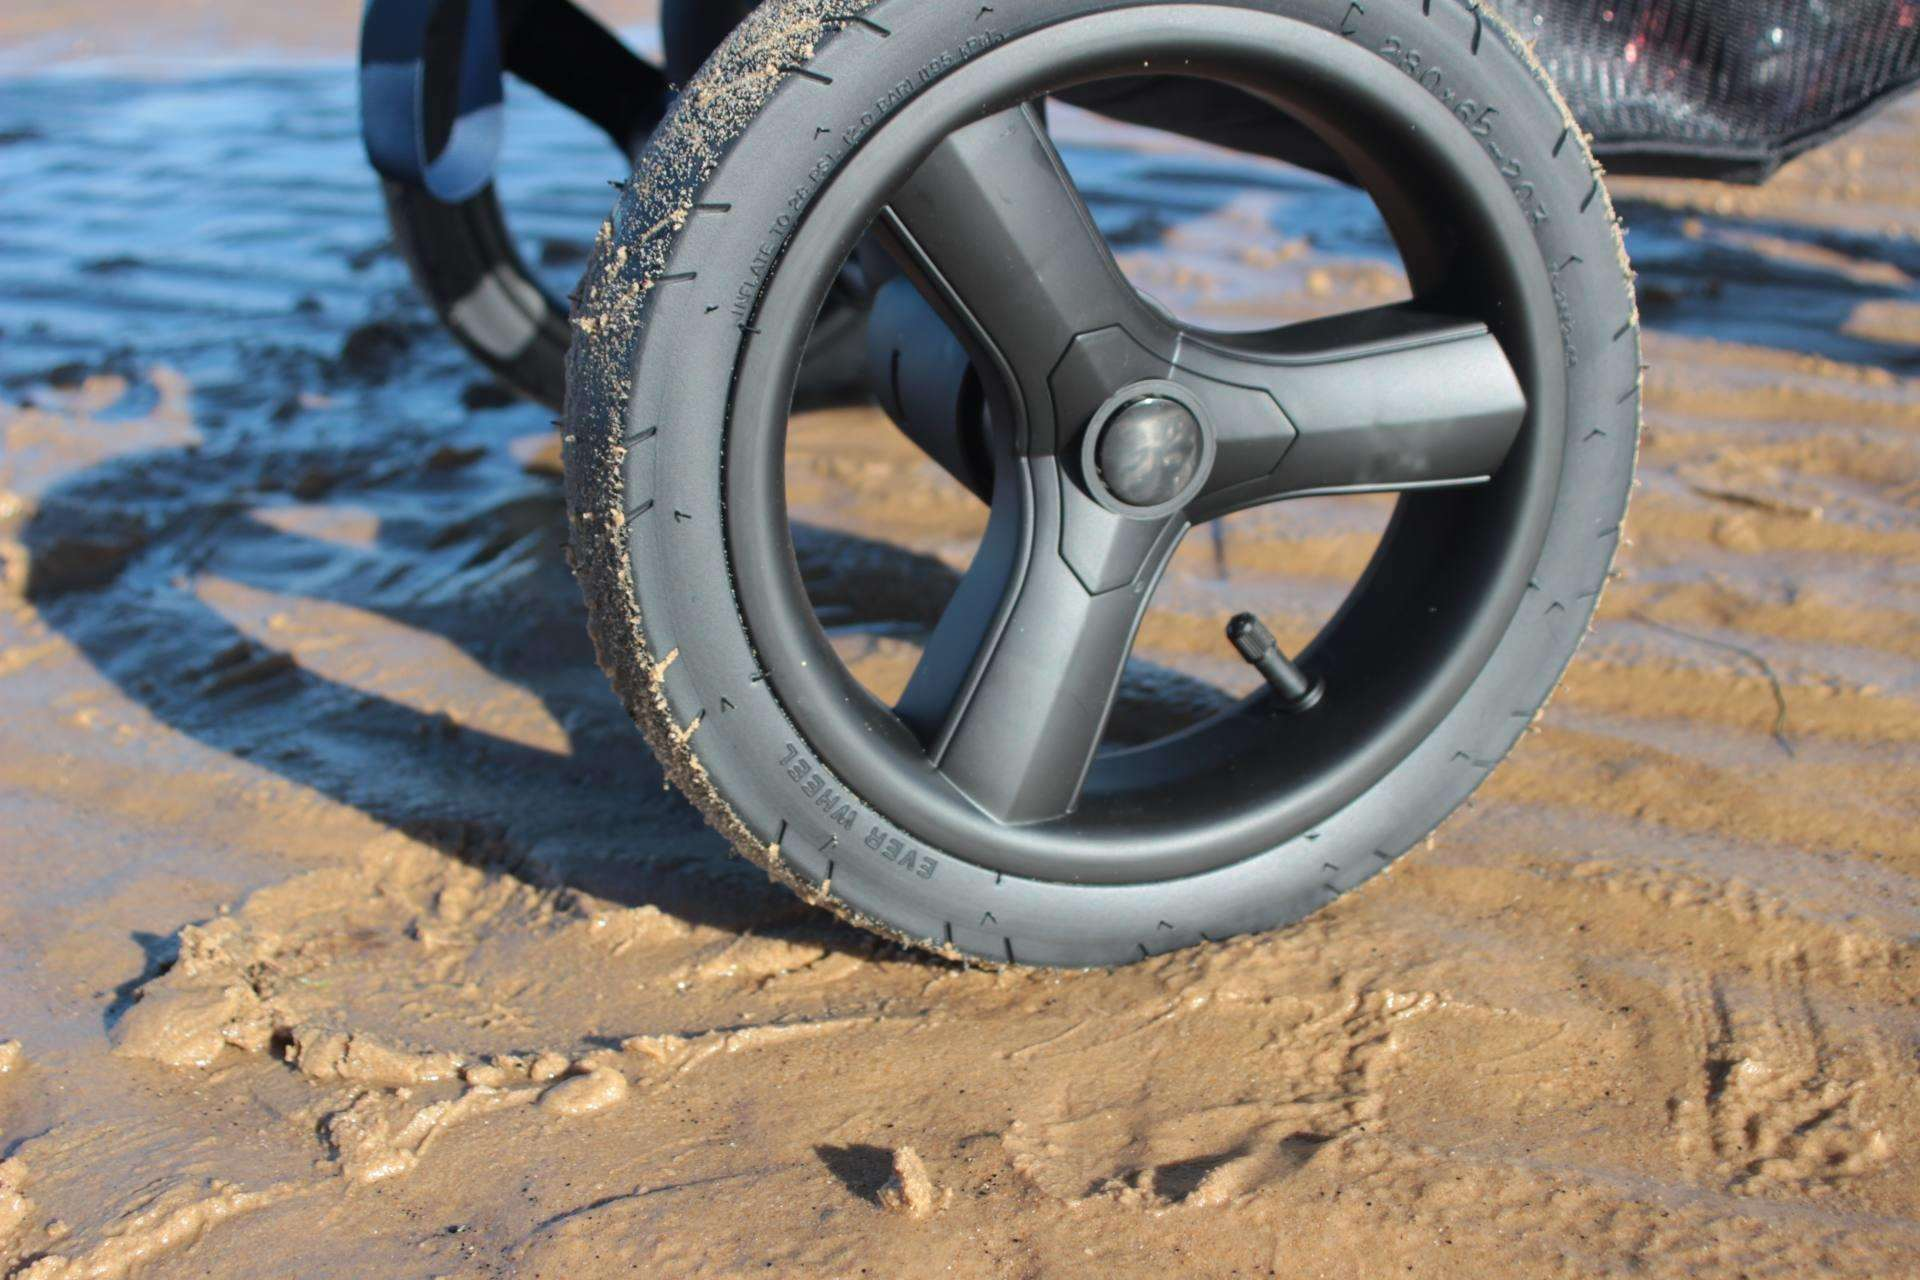 iCandy Peach All terrain Review, IMG 2771%, product-review%